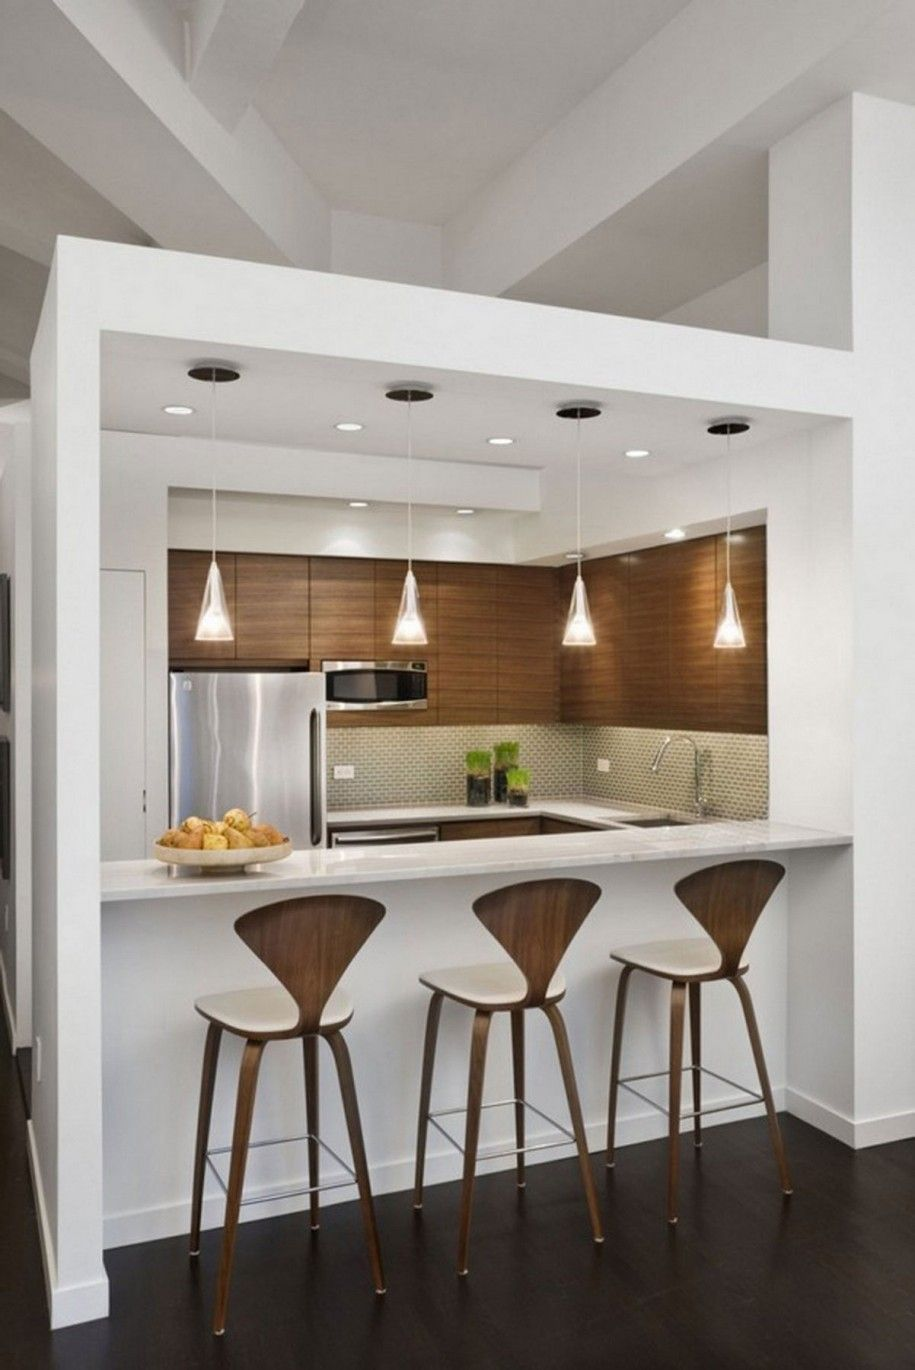 Superb Best Fixture Of Kitchen Decorating Ideas: Mini Bar Small Kitchen Decoration  Ideas Modern House Beams Ceiling ~ Emsorter.com Kitchen Designs Inspiration